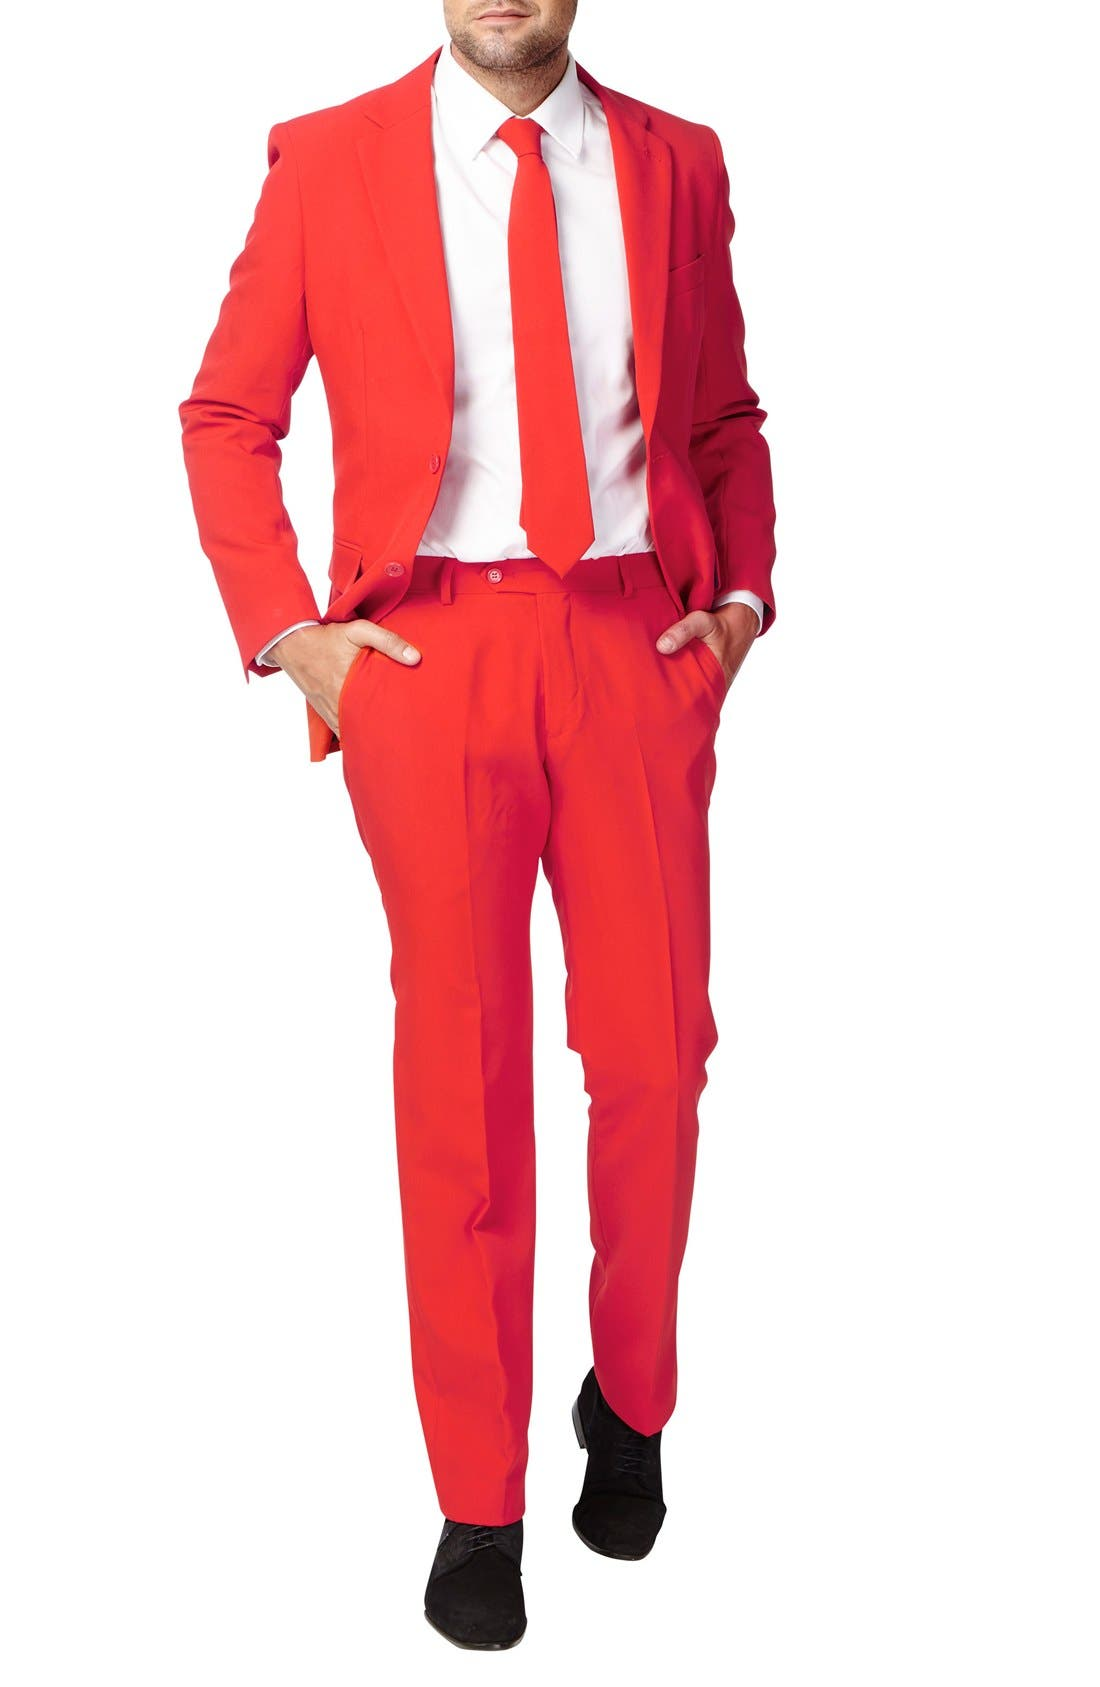 OppoSuit 'Red Devil' Trim Fit Two-Piece Suit with Tie